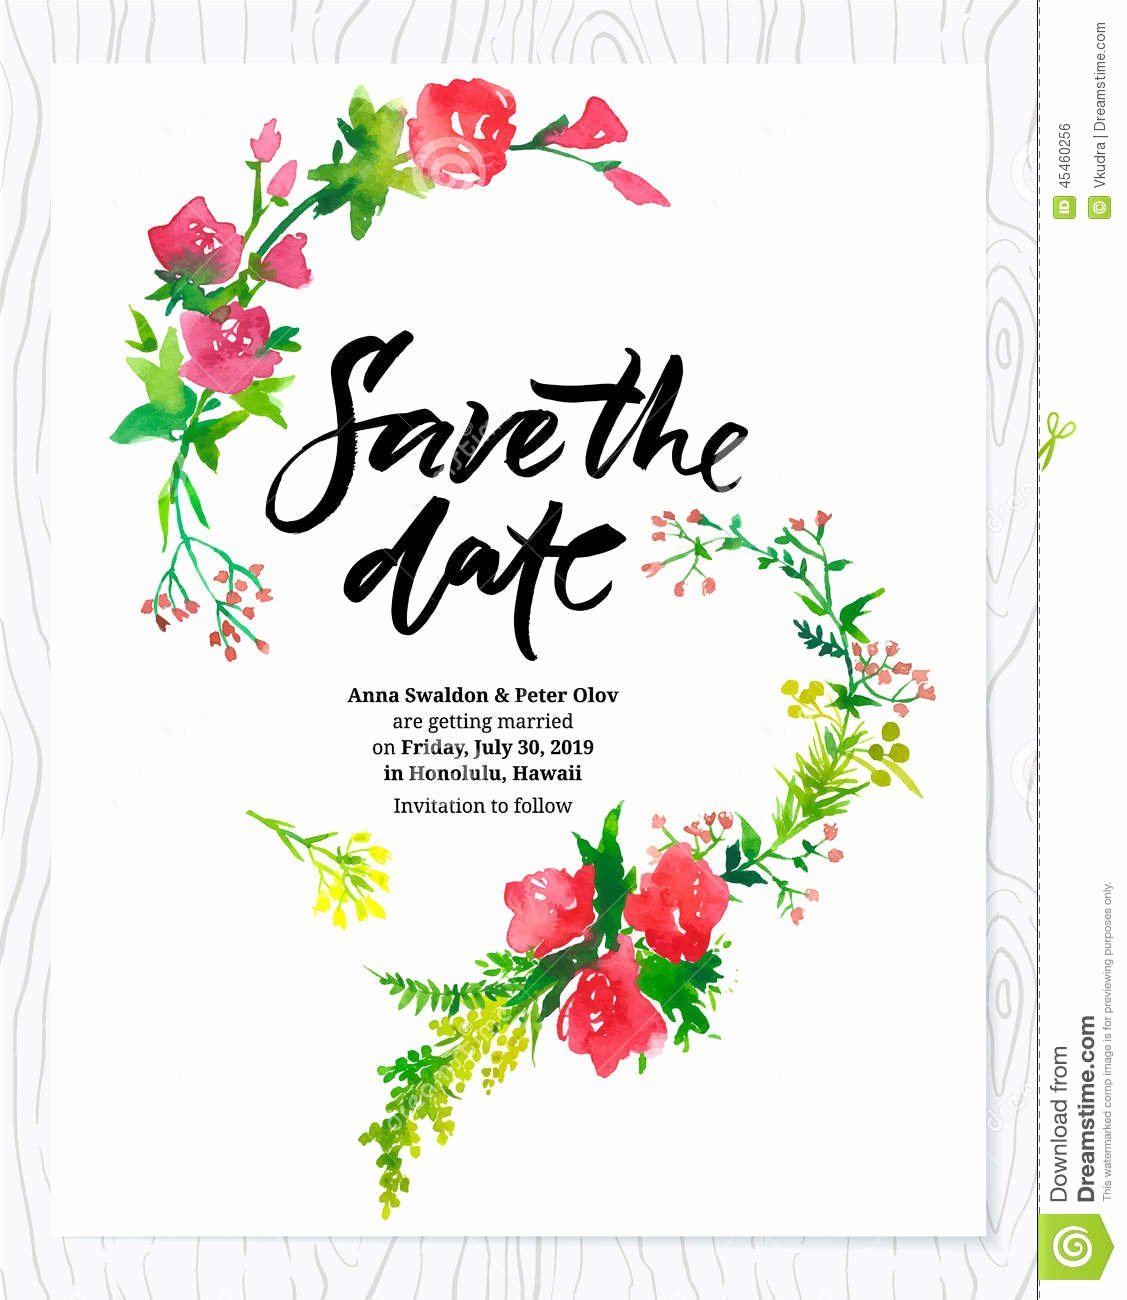 Floral Invitation Template Beautiful Wedding Floral Watercolor Card Save the Date Stock Vector